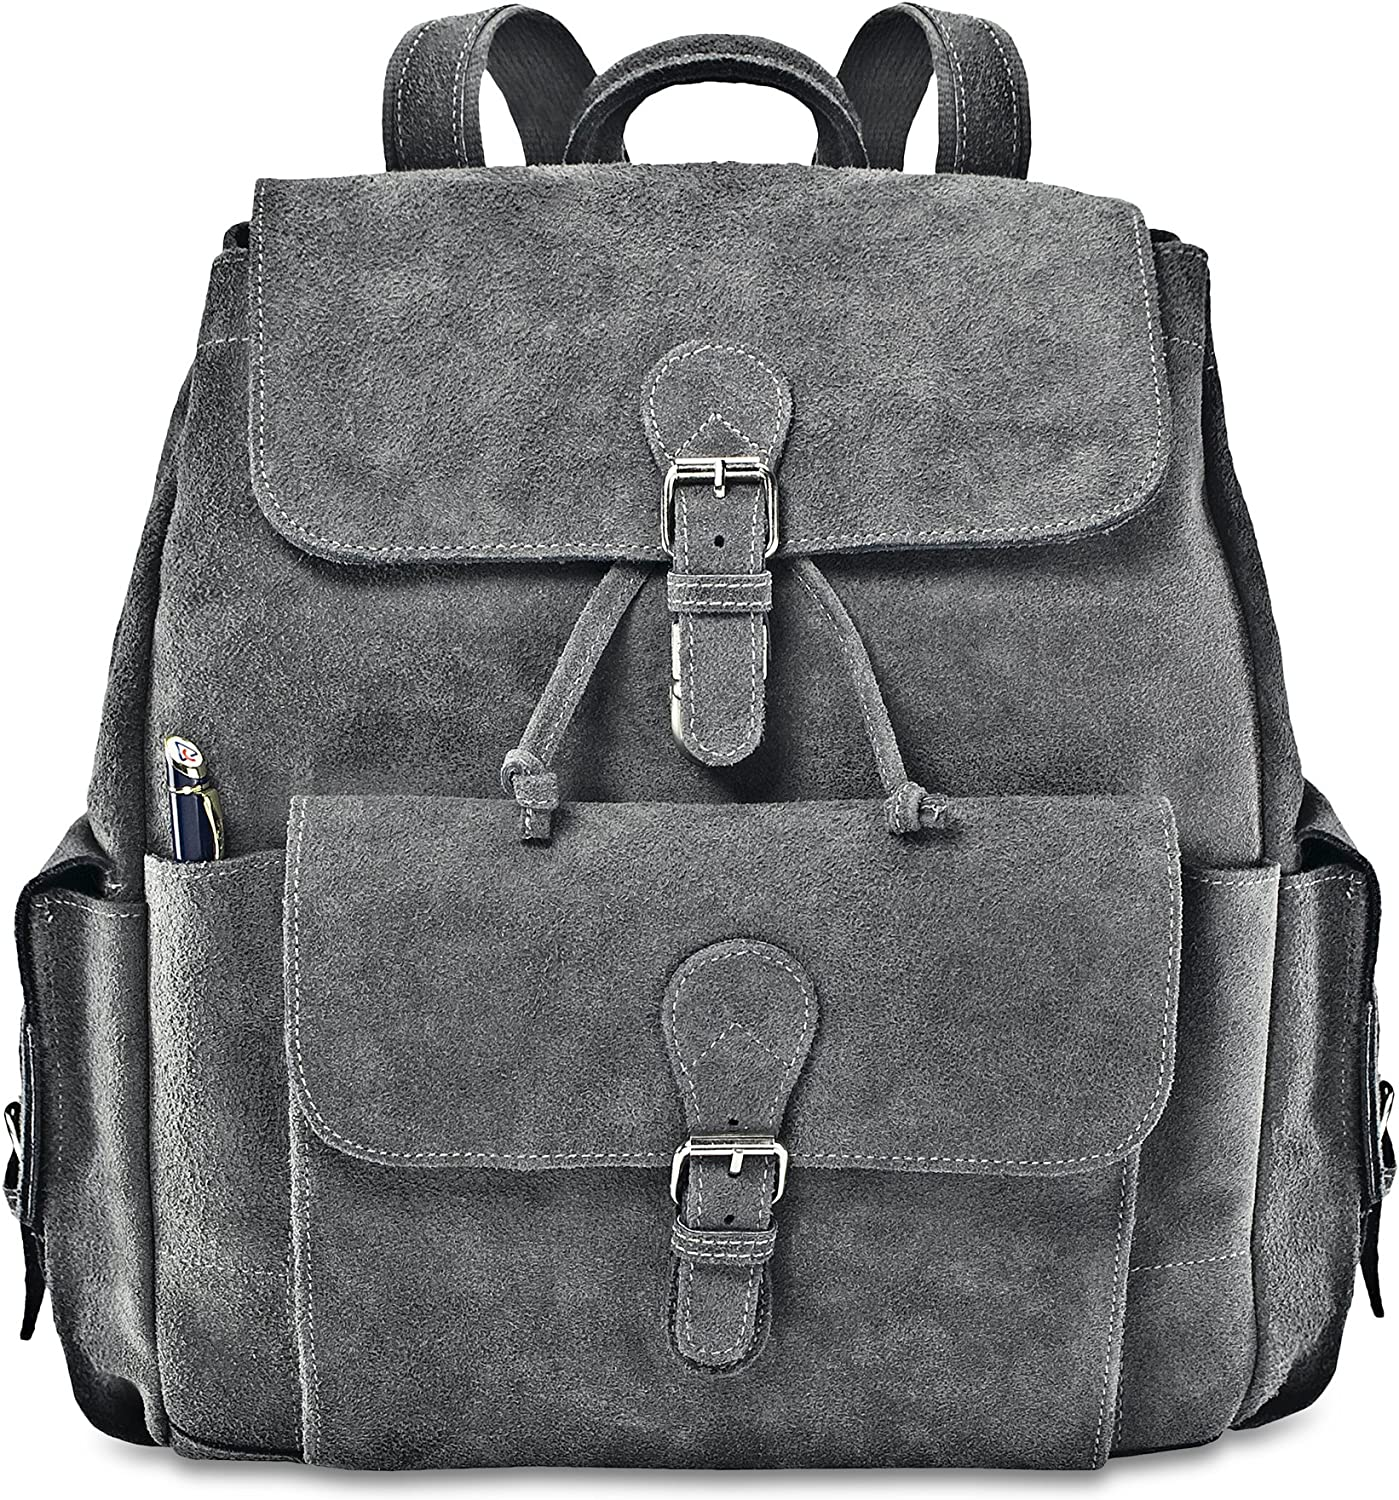 Double Strap Messenger Gray David King /& Co One Size